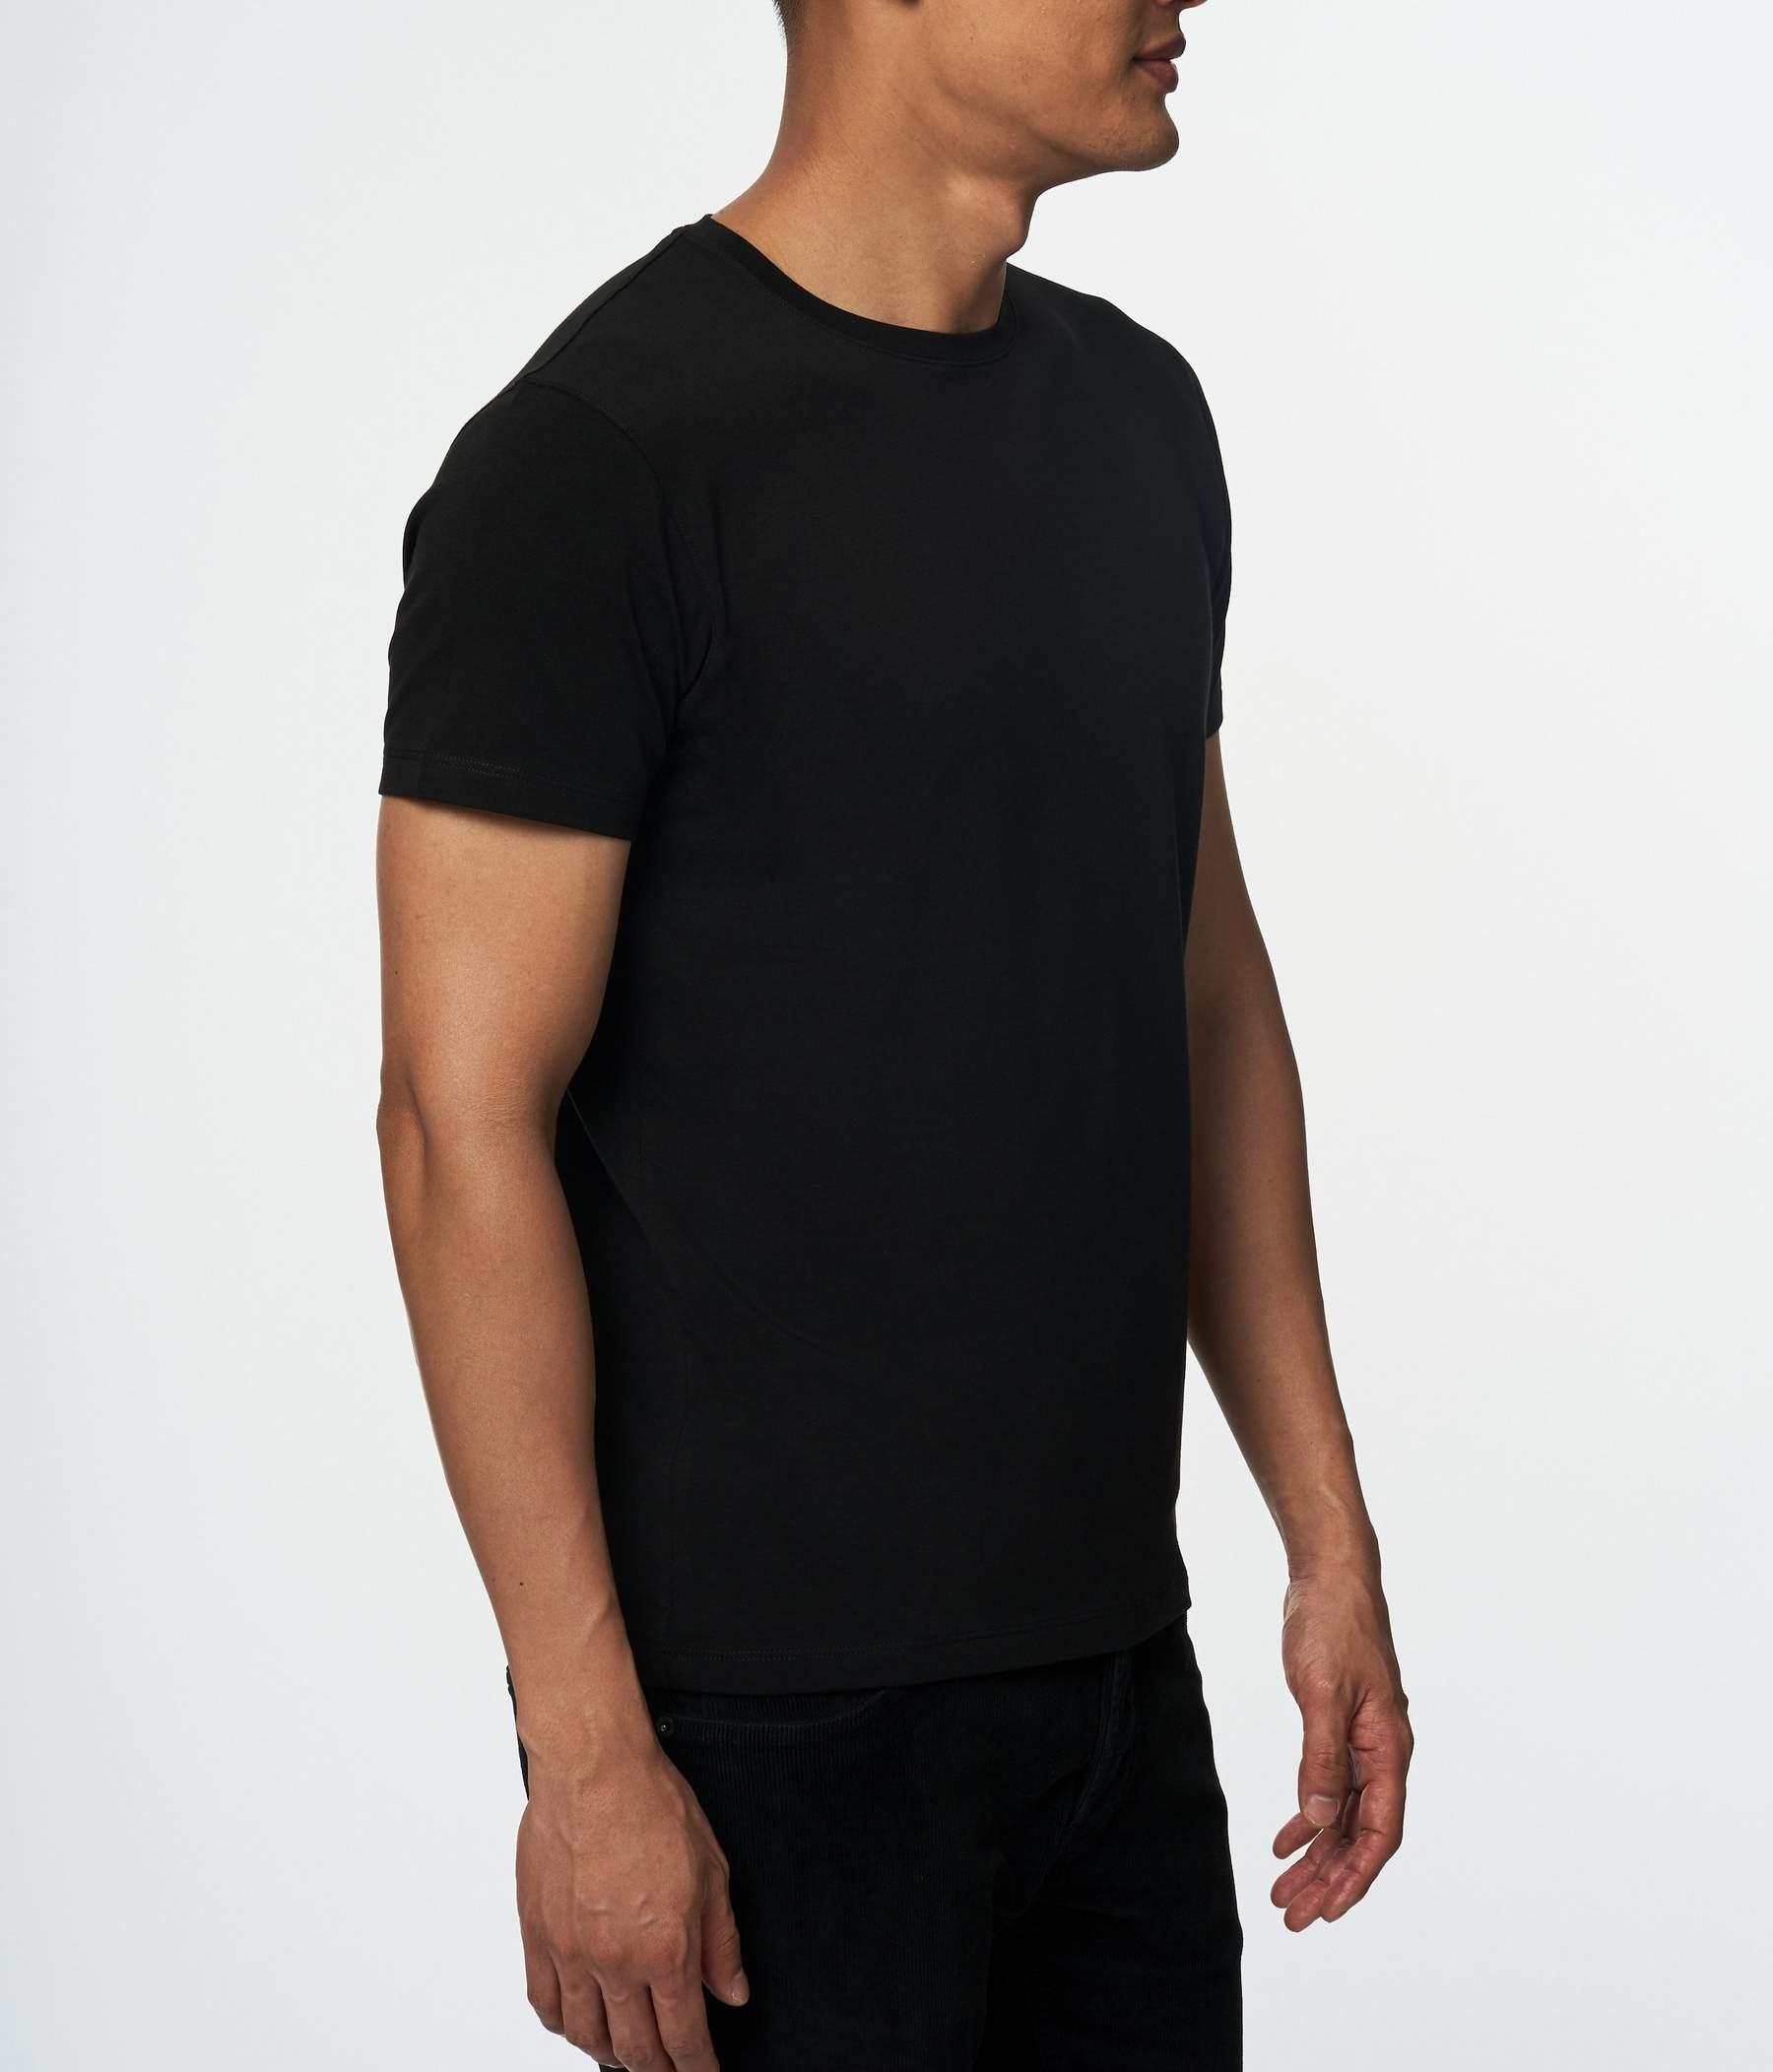 PIMA COTTON STRETCH CREW NECK black